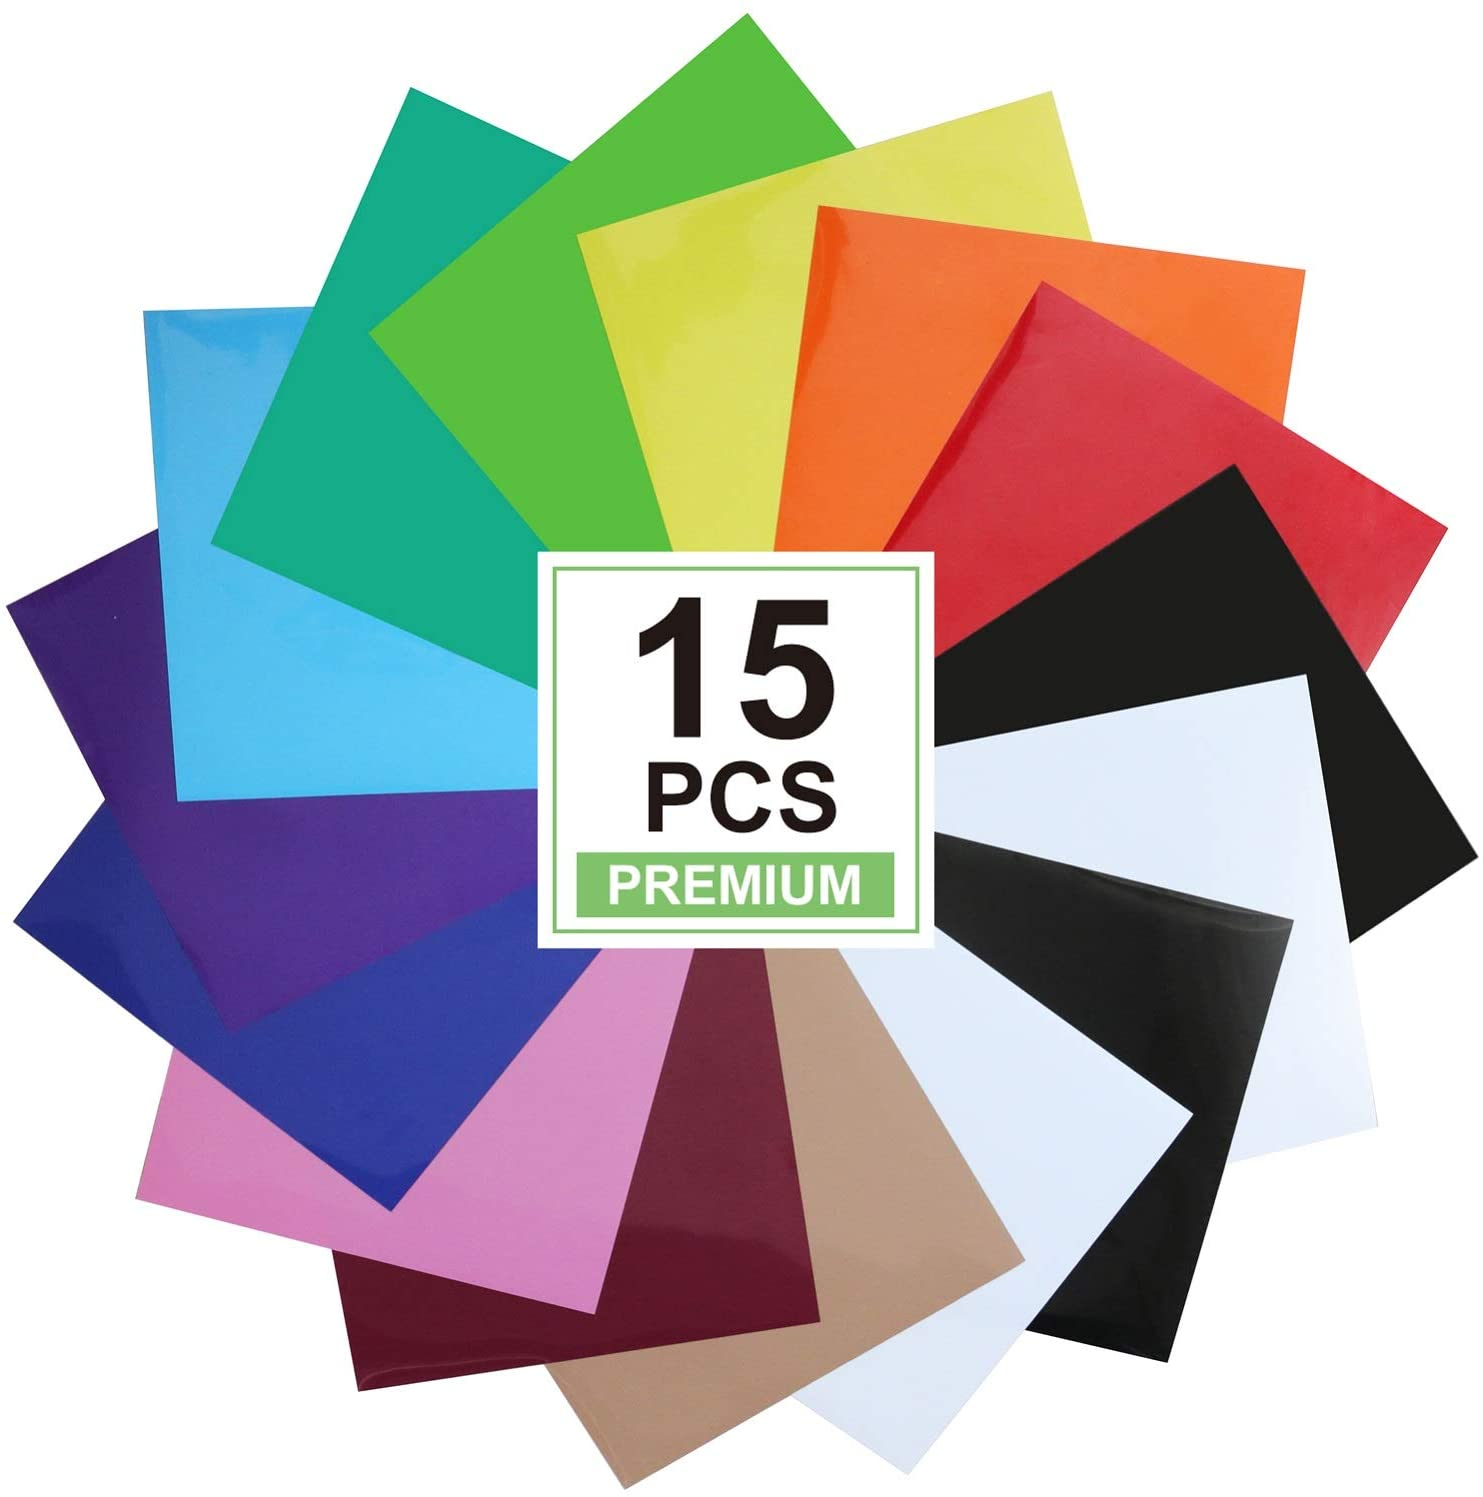 CAREGY Heat Transfer Vinyl for T-Shirts 12in.x10in. 15 Sheets-Iron On Vinyl HTV Bundle